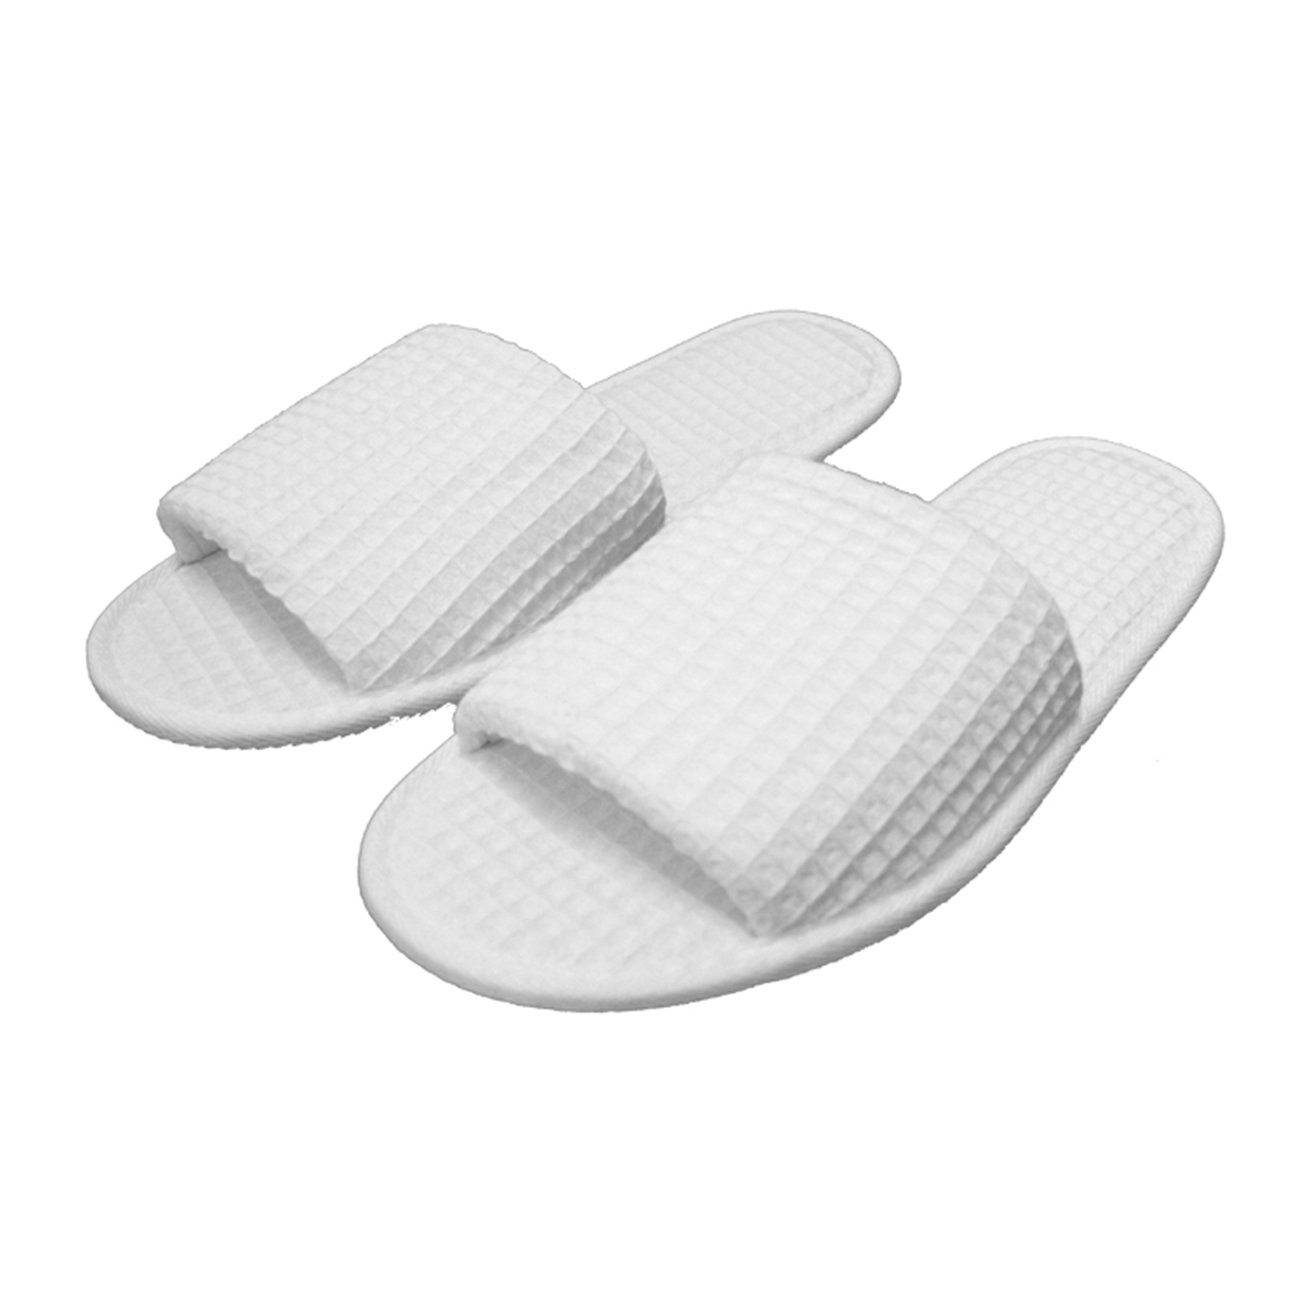 Waffle Open Toe Adult Slippers Cloth Spa Hotel Unisex Slippers for Women and Men Wholesale 100 Pcs White